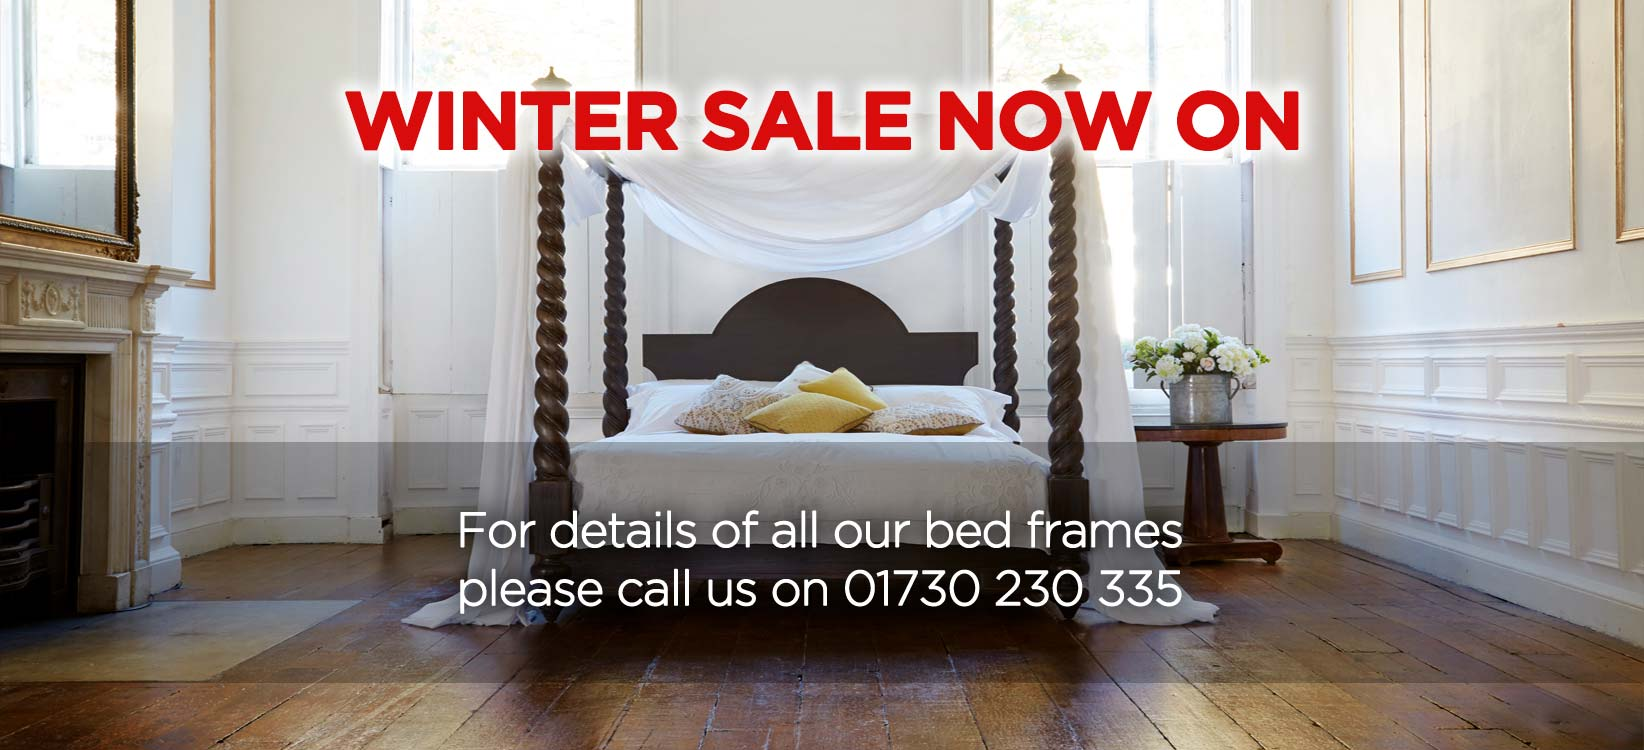 Simon Horn Contact Winter Sale